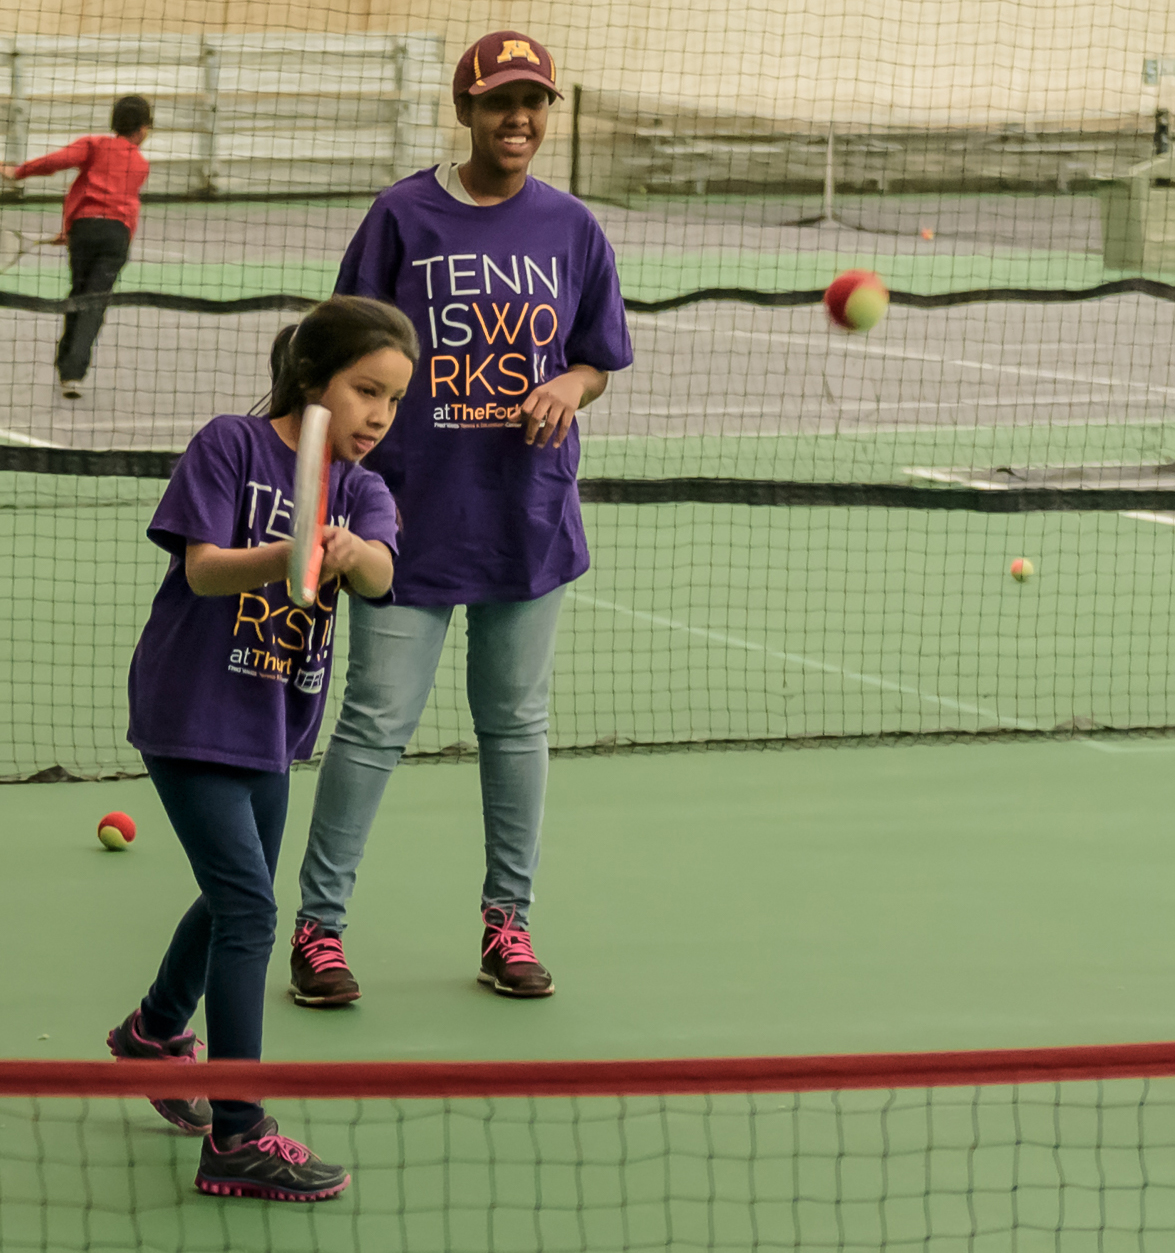 Our Mission - We bring people together of all ages, abilities, and backgrounds to embrace the lifelong game of tennis while serving under-resourced youth with the support of the Community.